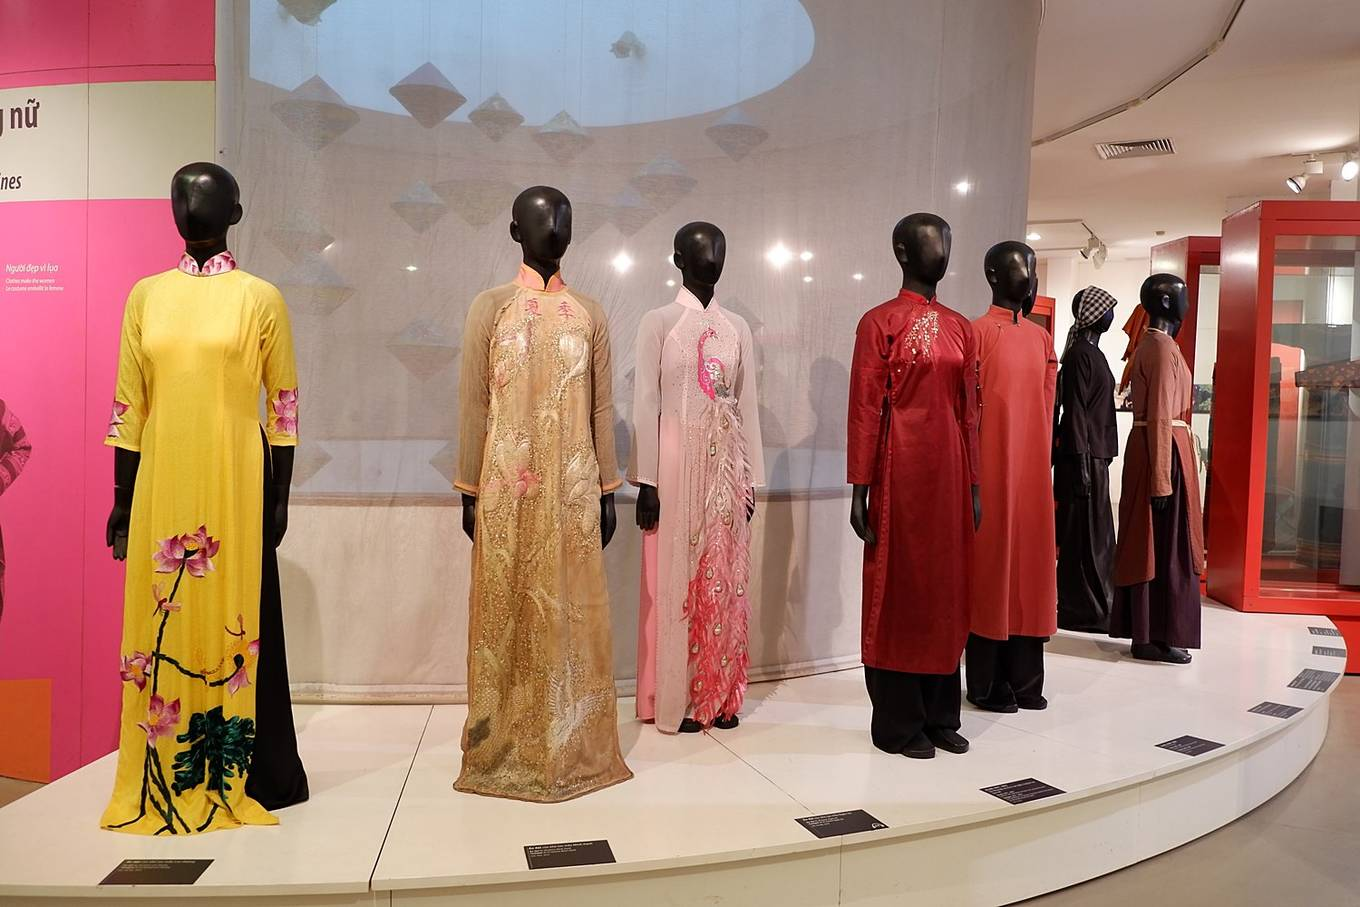 The traditional dress of Vietnamese women is displayed in the fashion floor